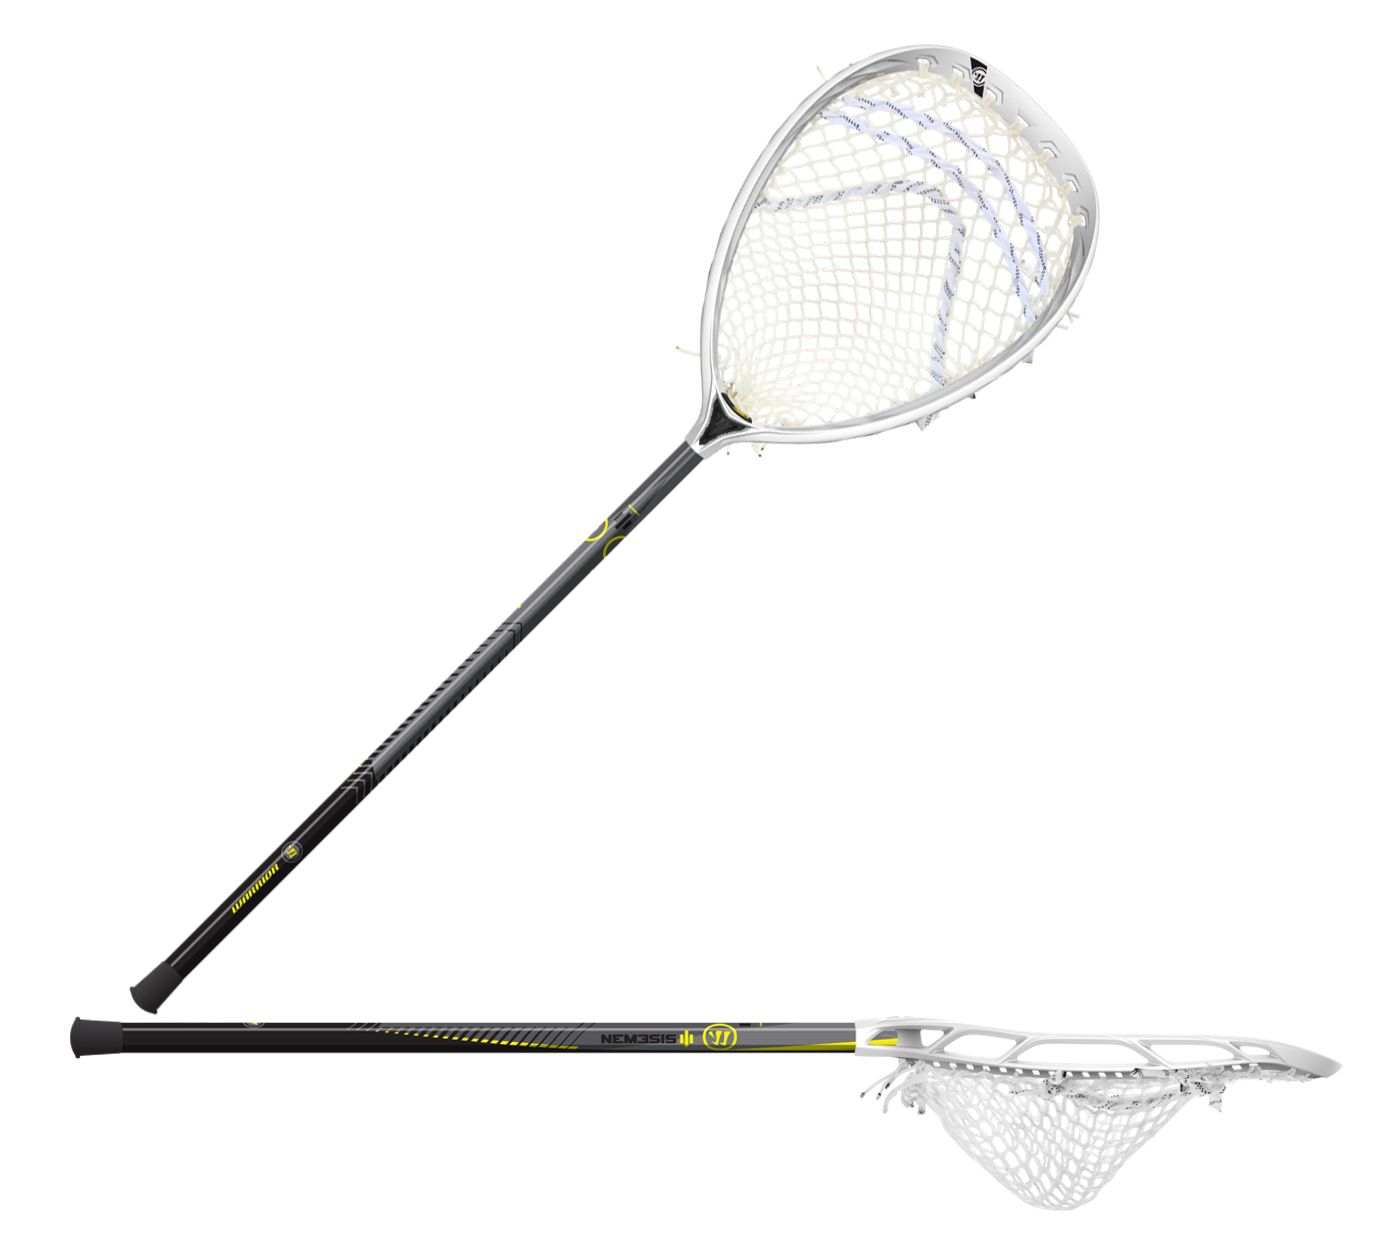 Warrior Nemesis 3 Goalie Stick